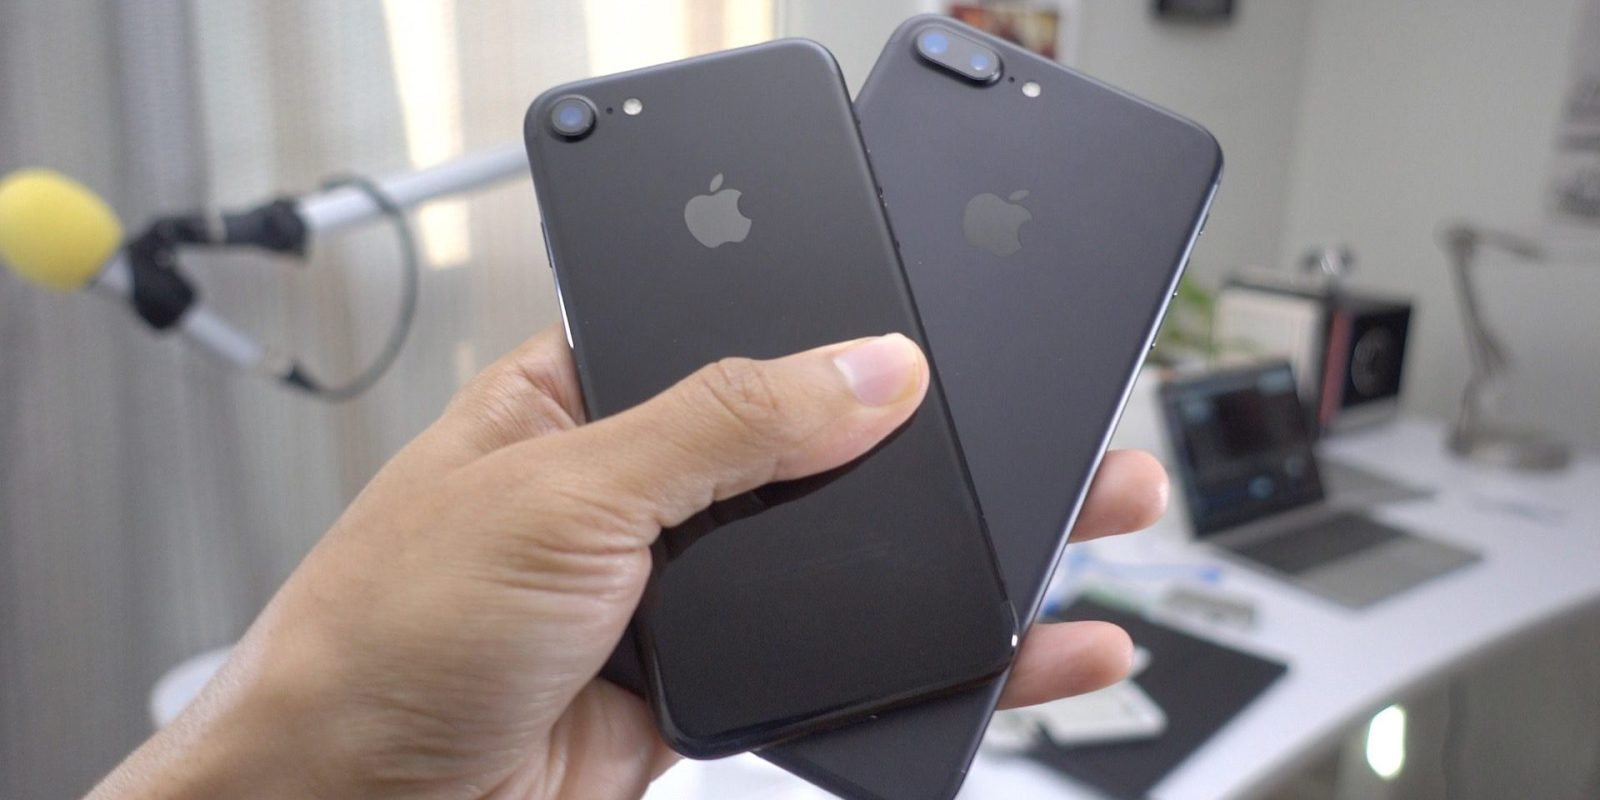 How to check if iPhone 7 is eligible for the 'No Service